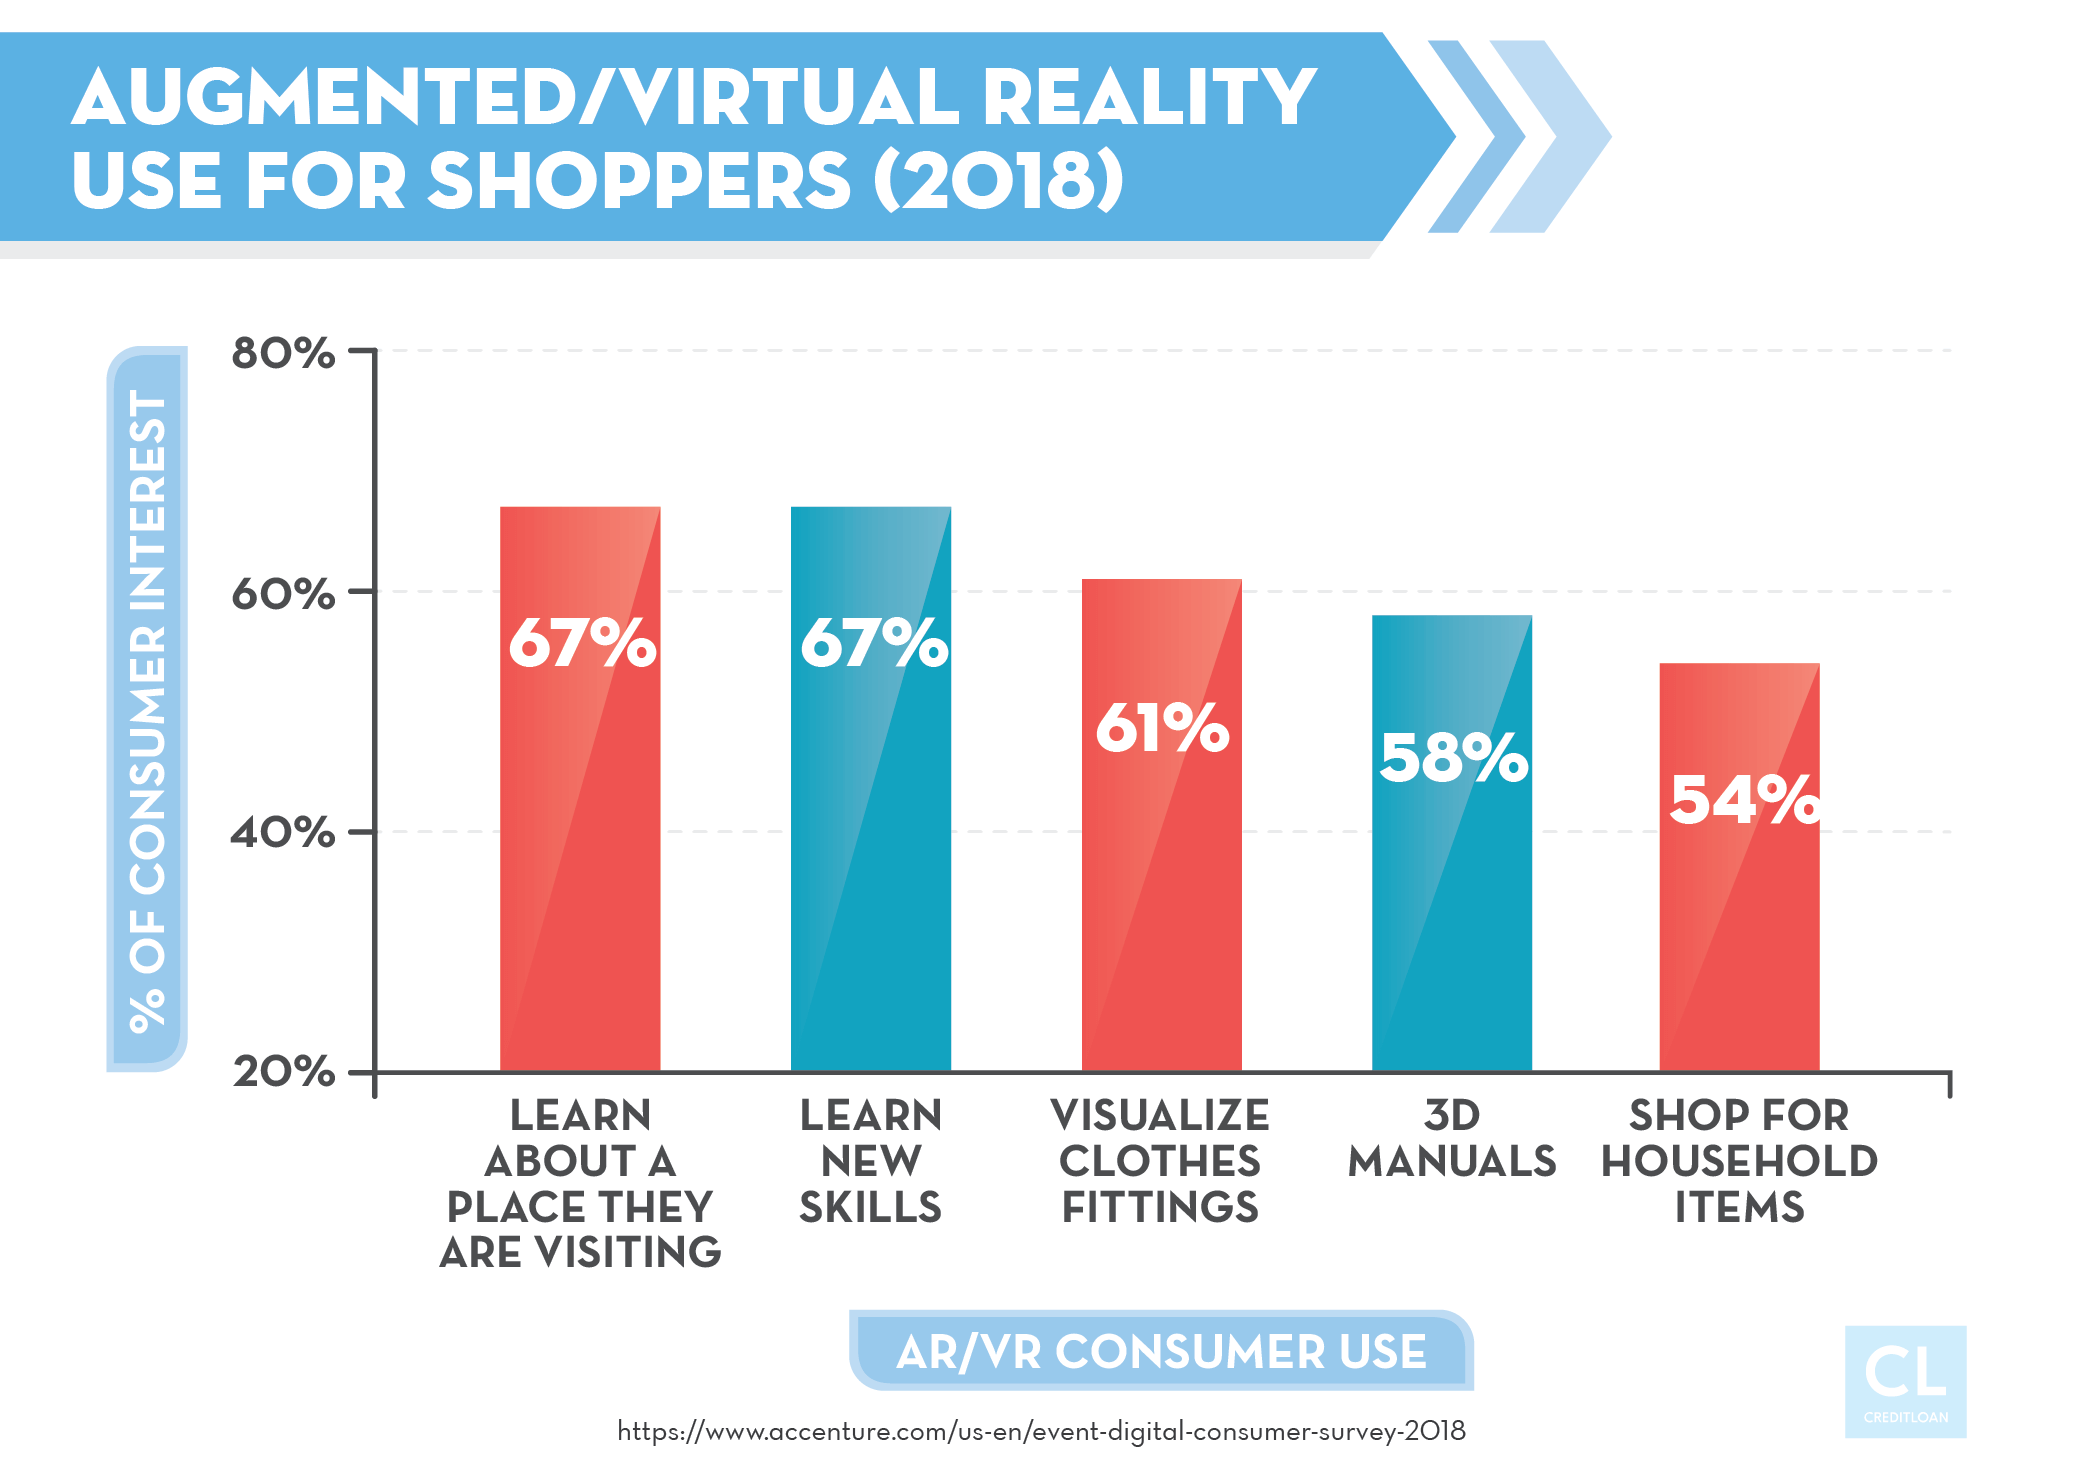 Virtual Reality Use for Shoppers (2018)